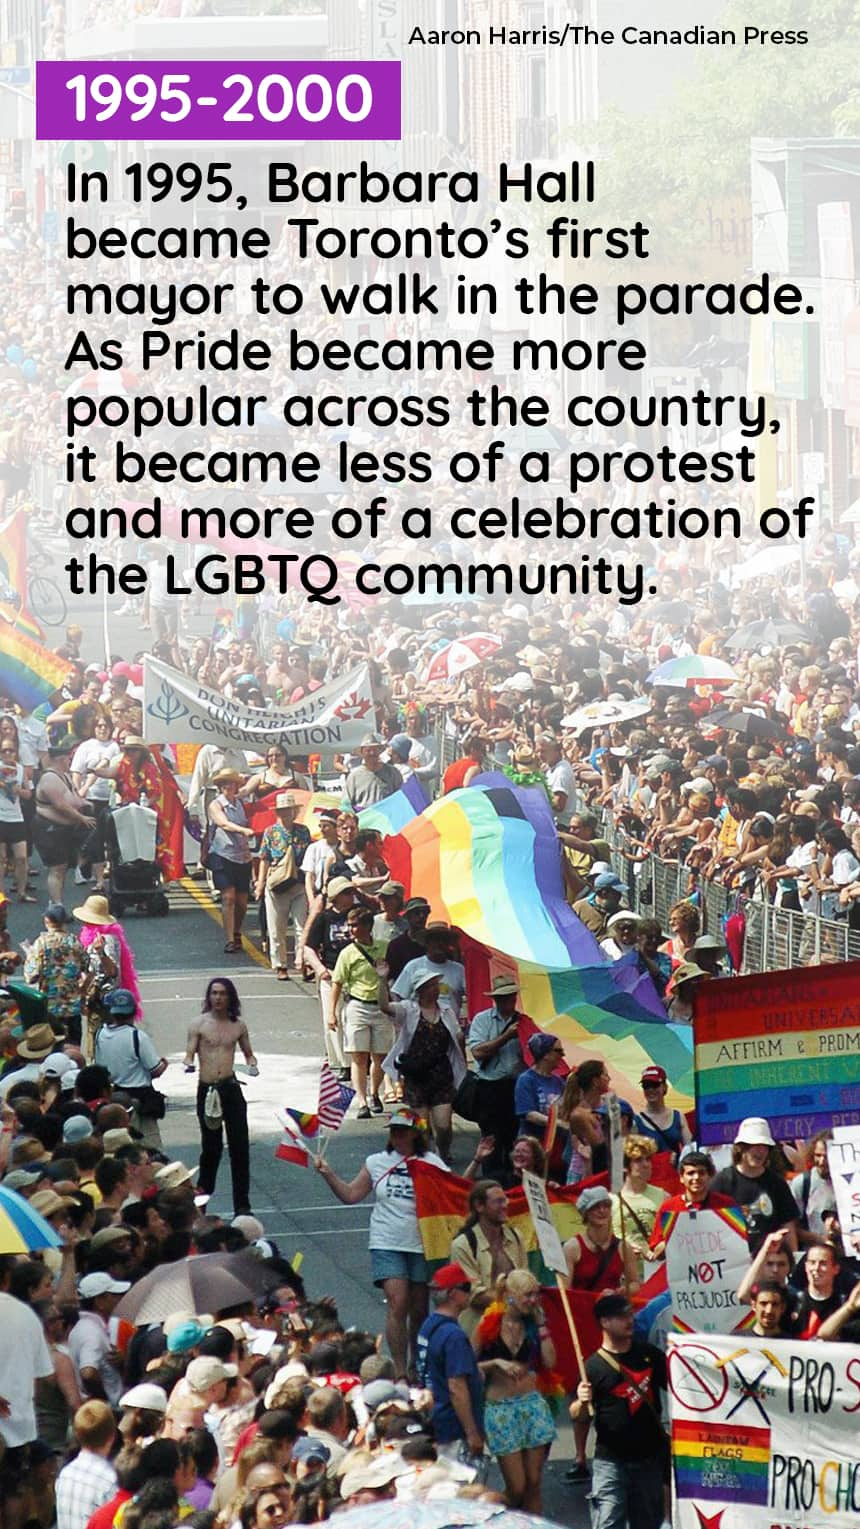 A massive crowd of people with some rainbow flags down a city street